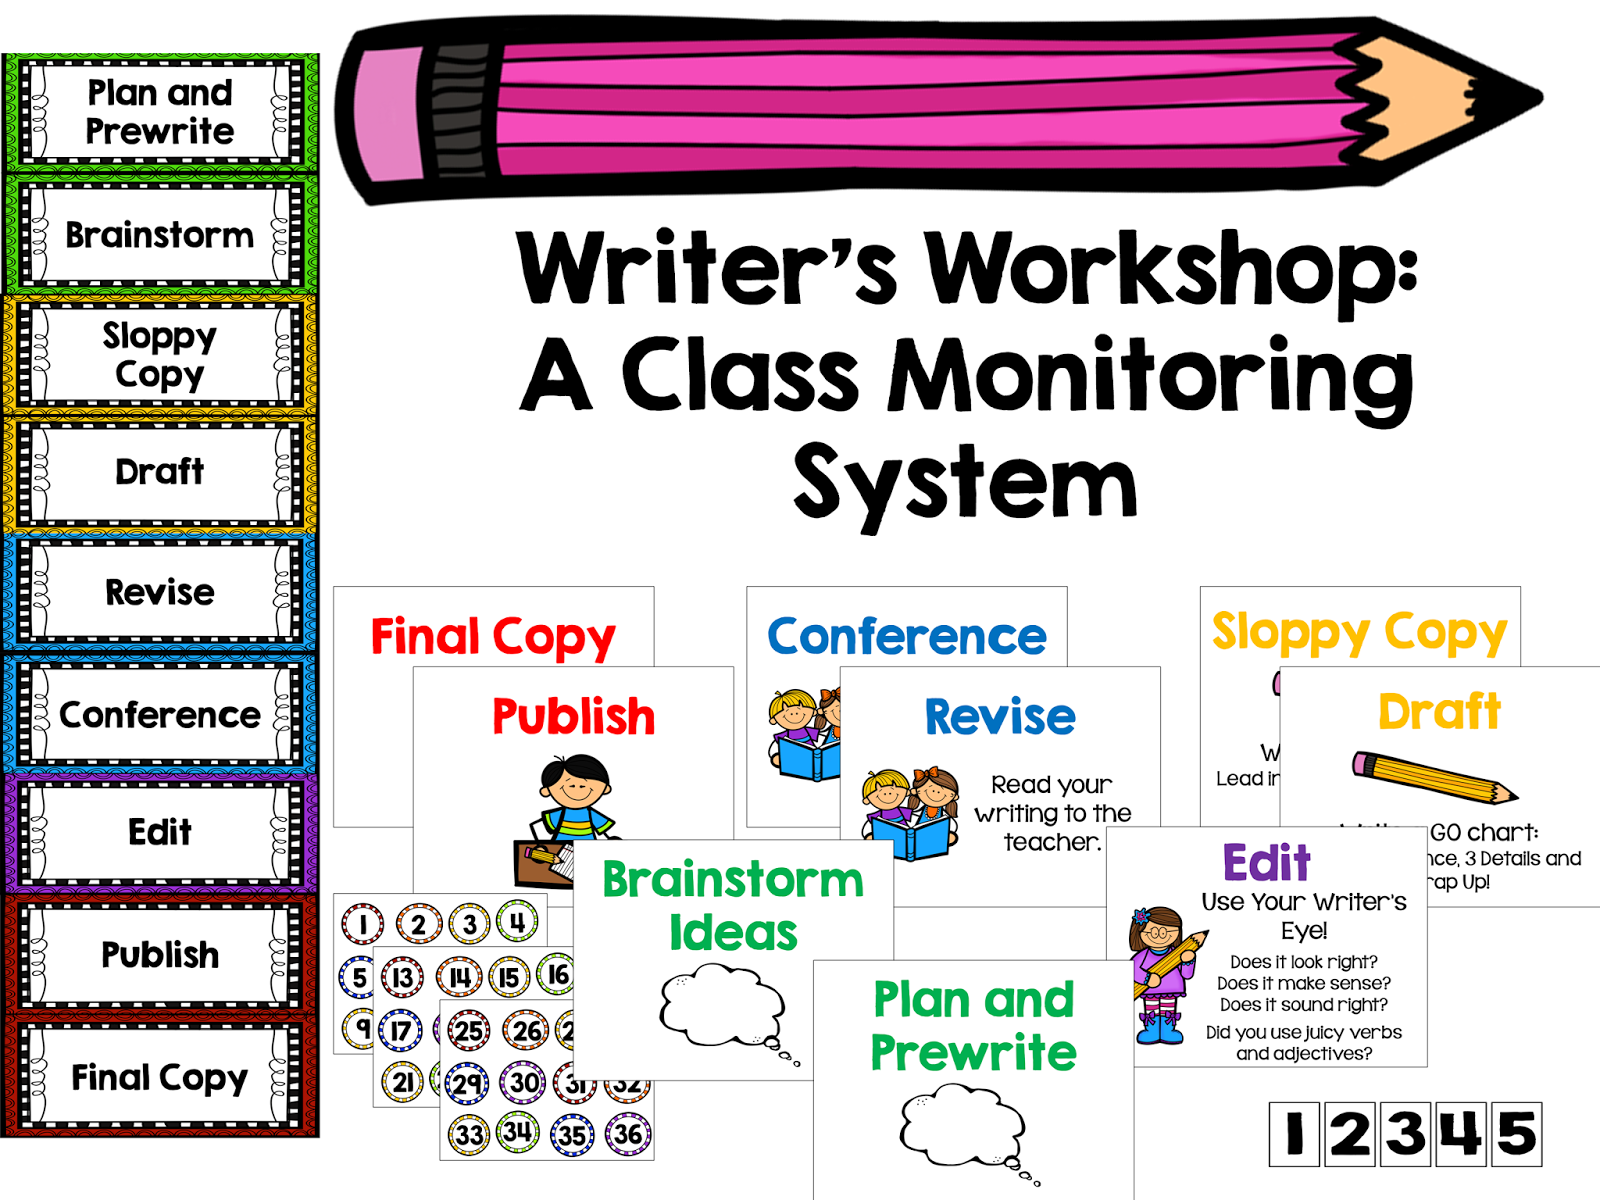 https://www.teacherspayteachers.com/Product/Writers-Workshop-A-Class-Monitoring-System-1311903